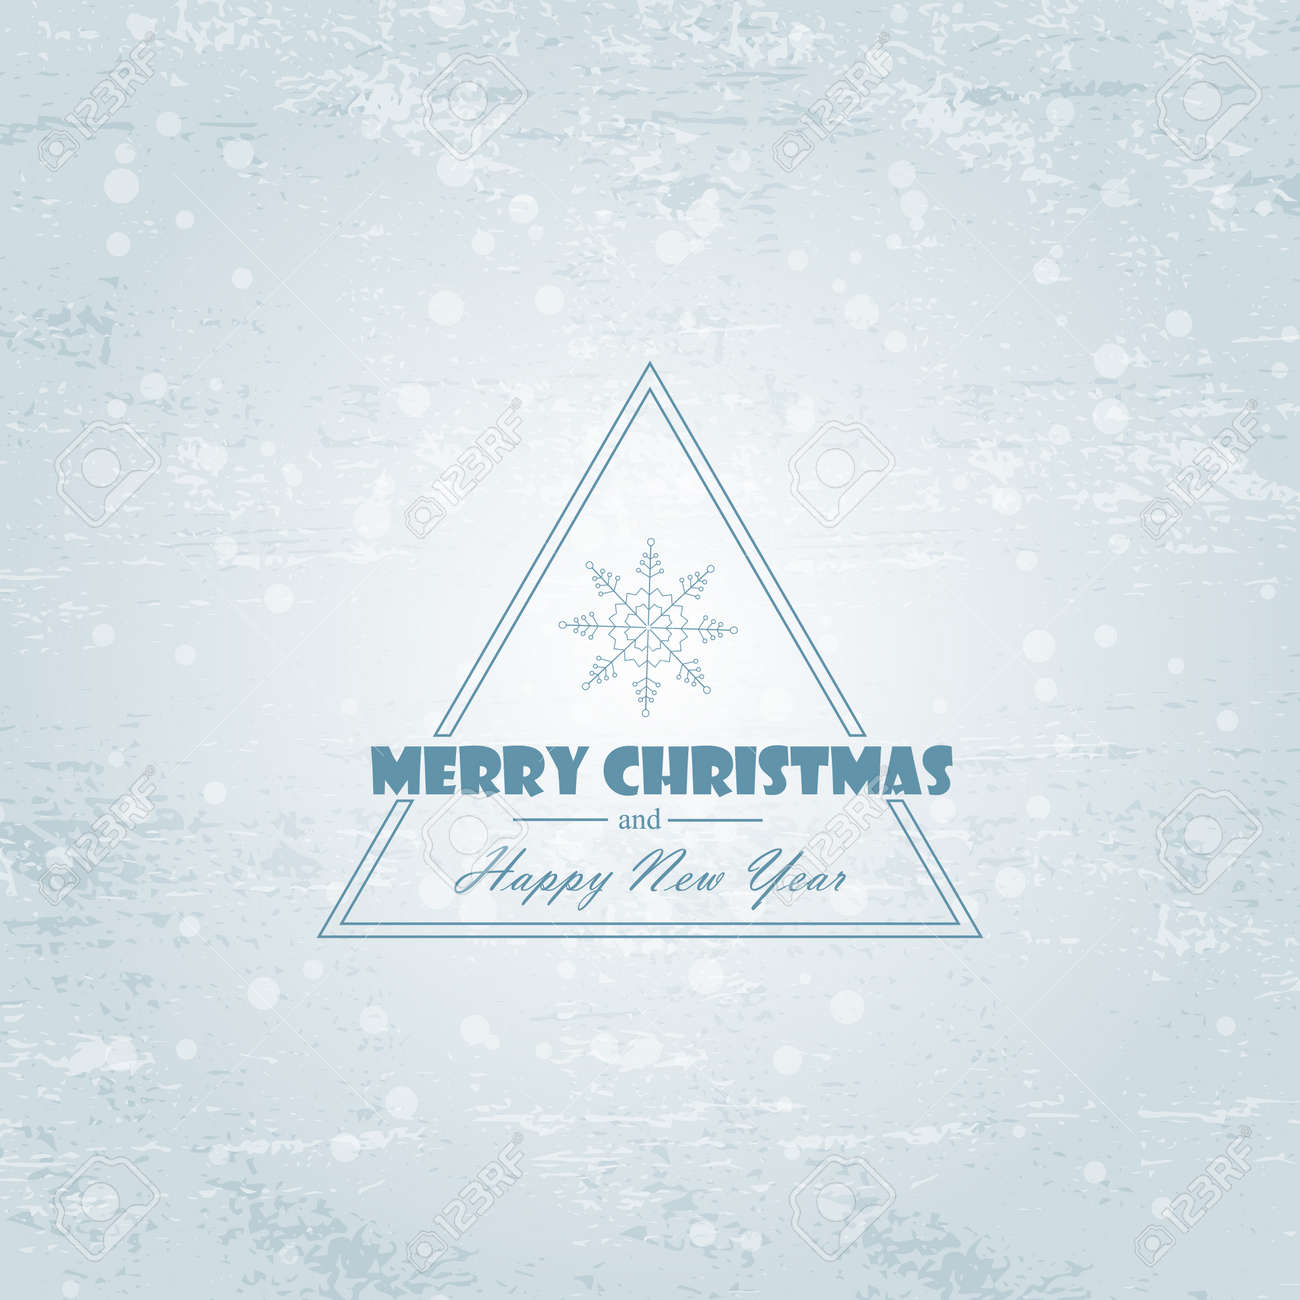 Christmas Light Vector Background Card Or InvitationChristmas Paper With And Black Vignette Border